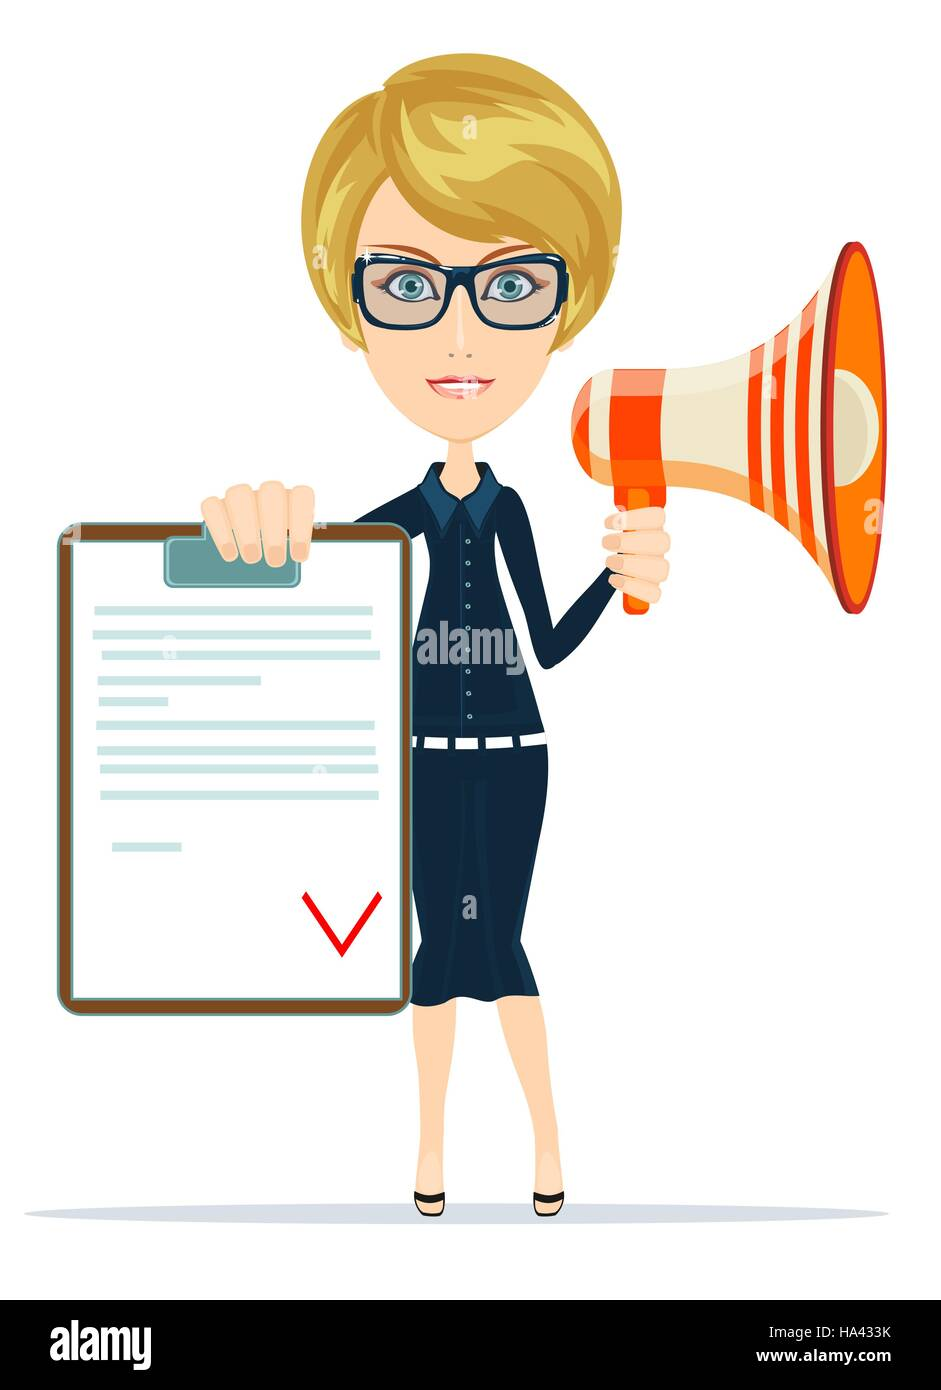 Business woman holding contract and megaphone. - Stock Vector